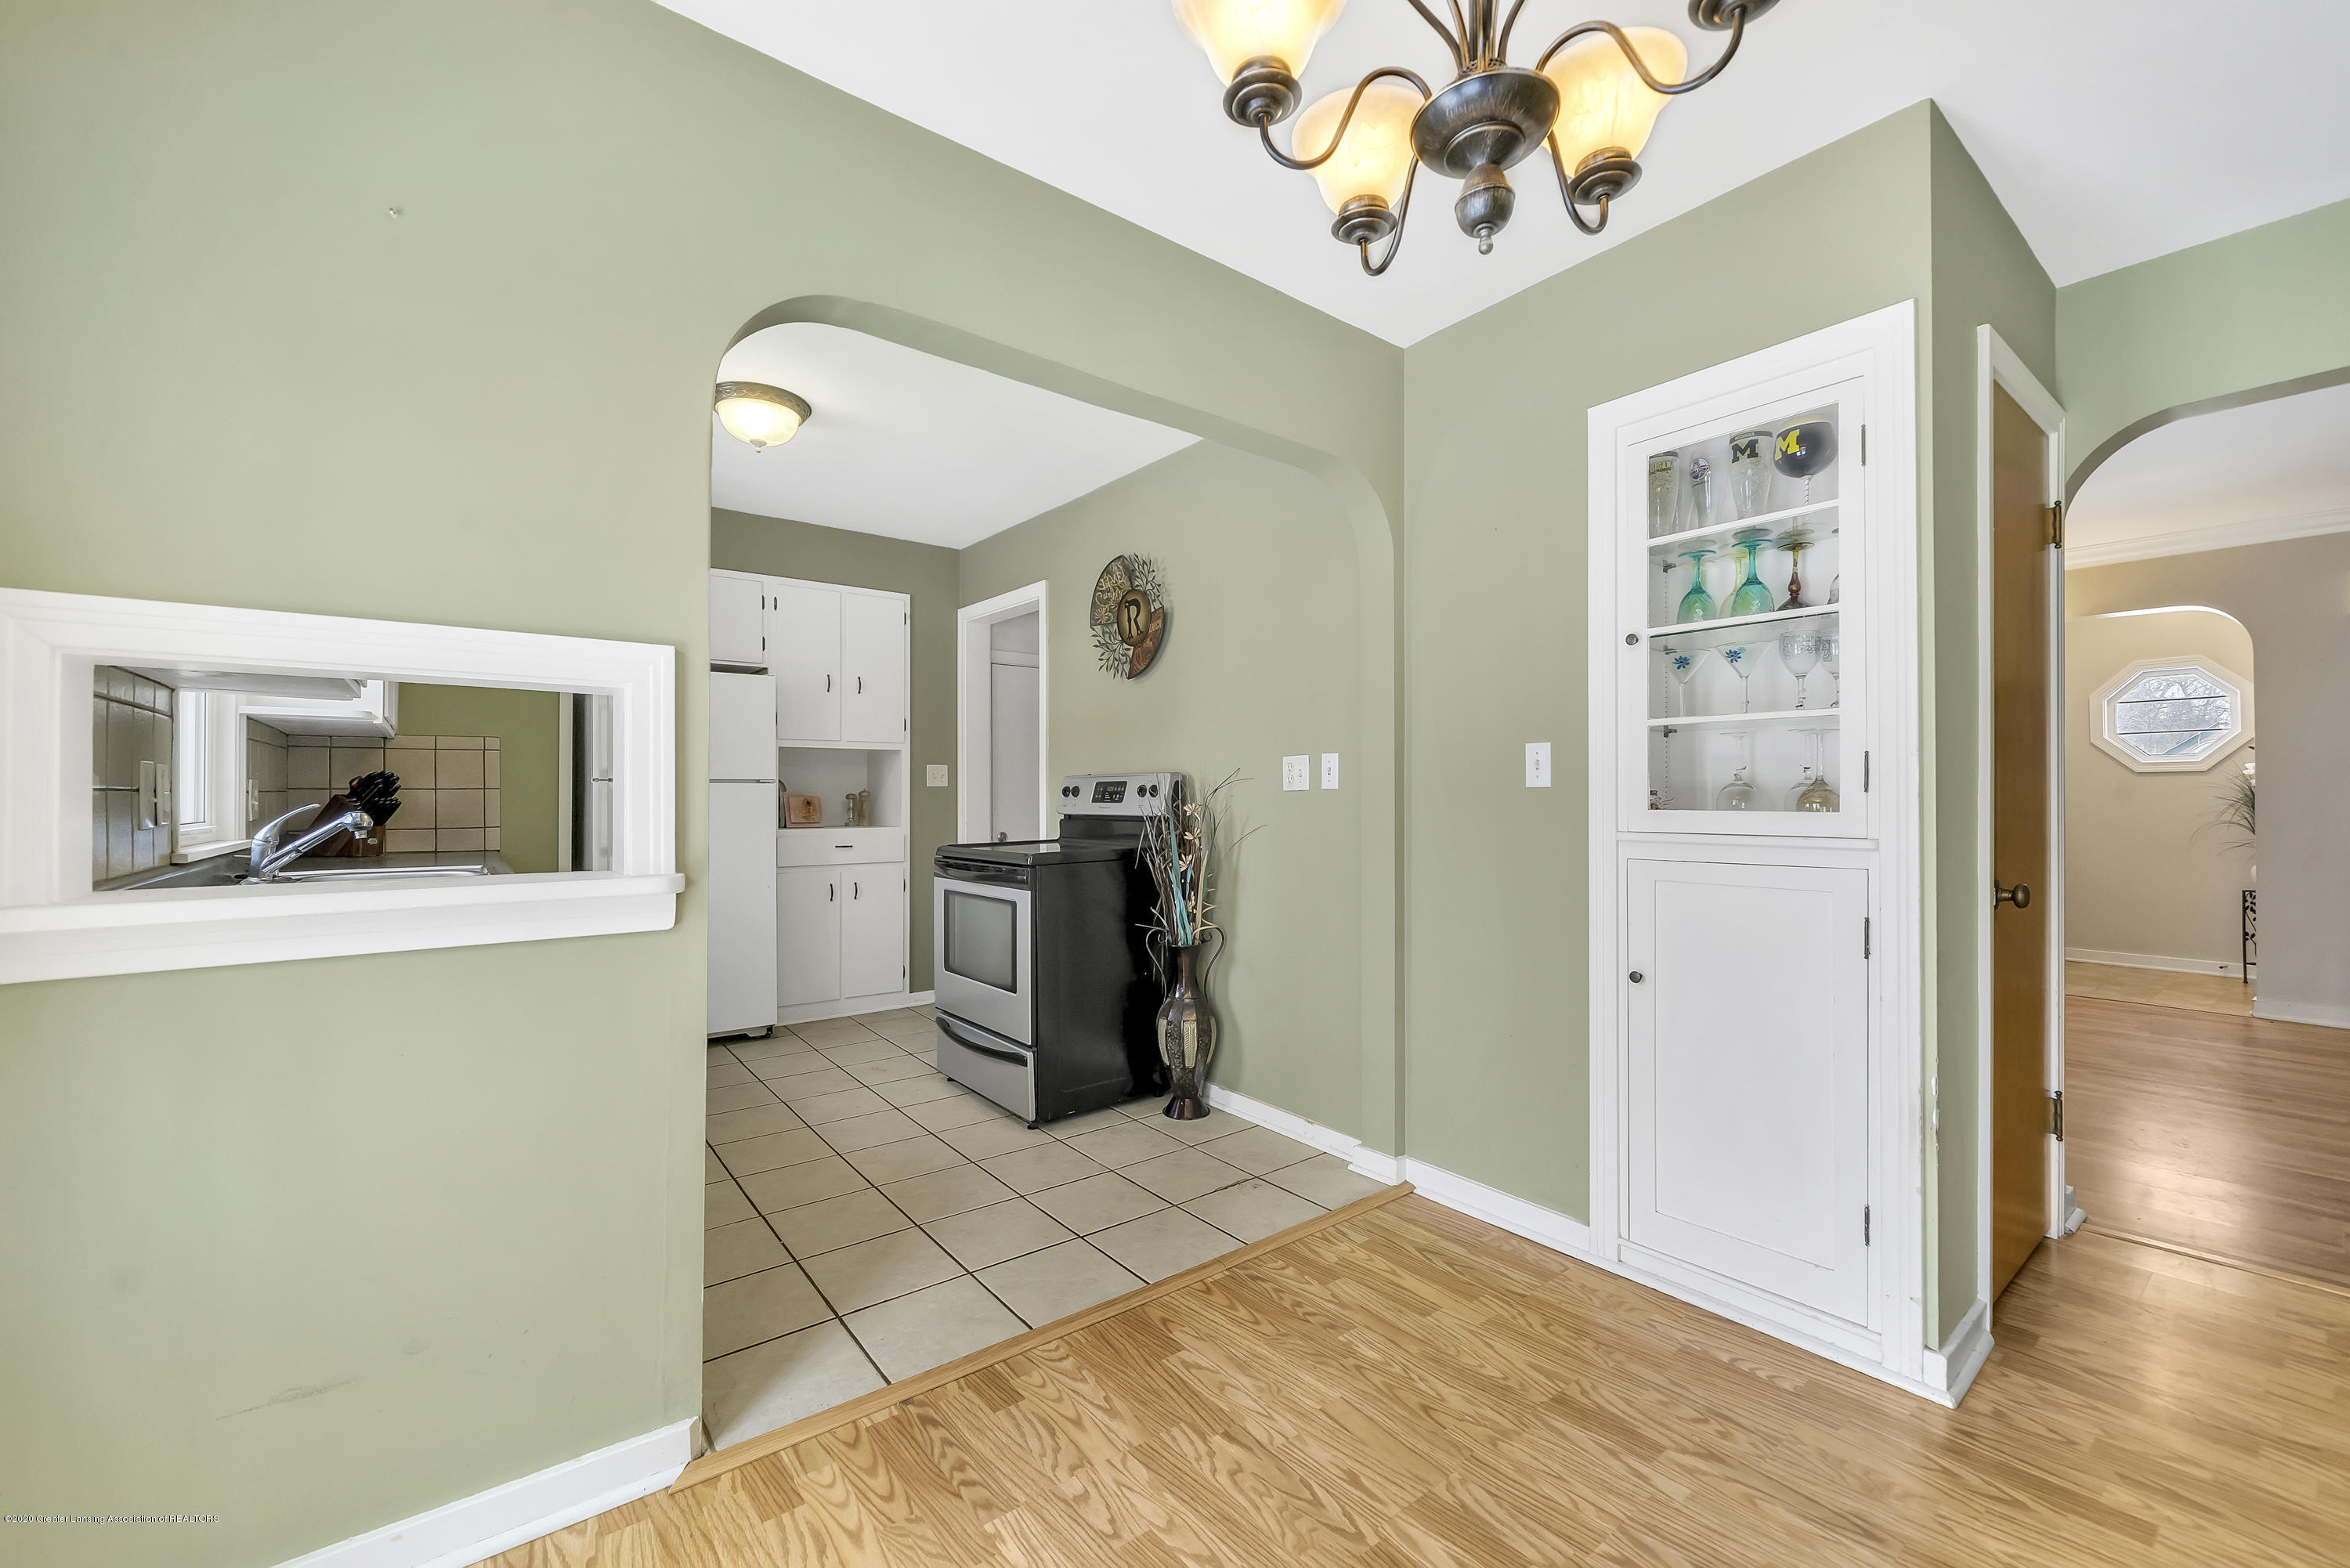 1406 W Rundle Ave - Diningroom with built in China Cabinet - 5